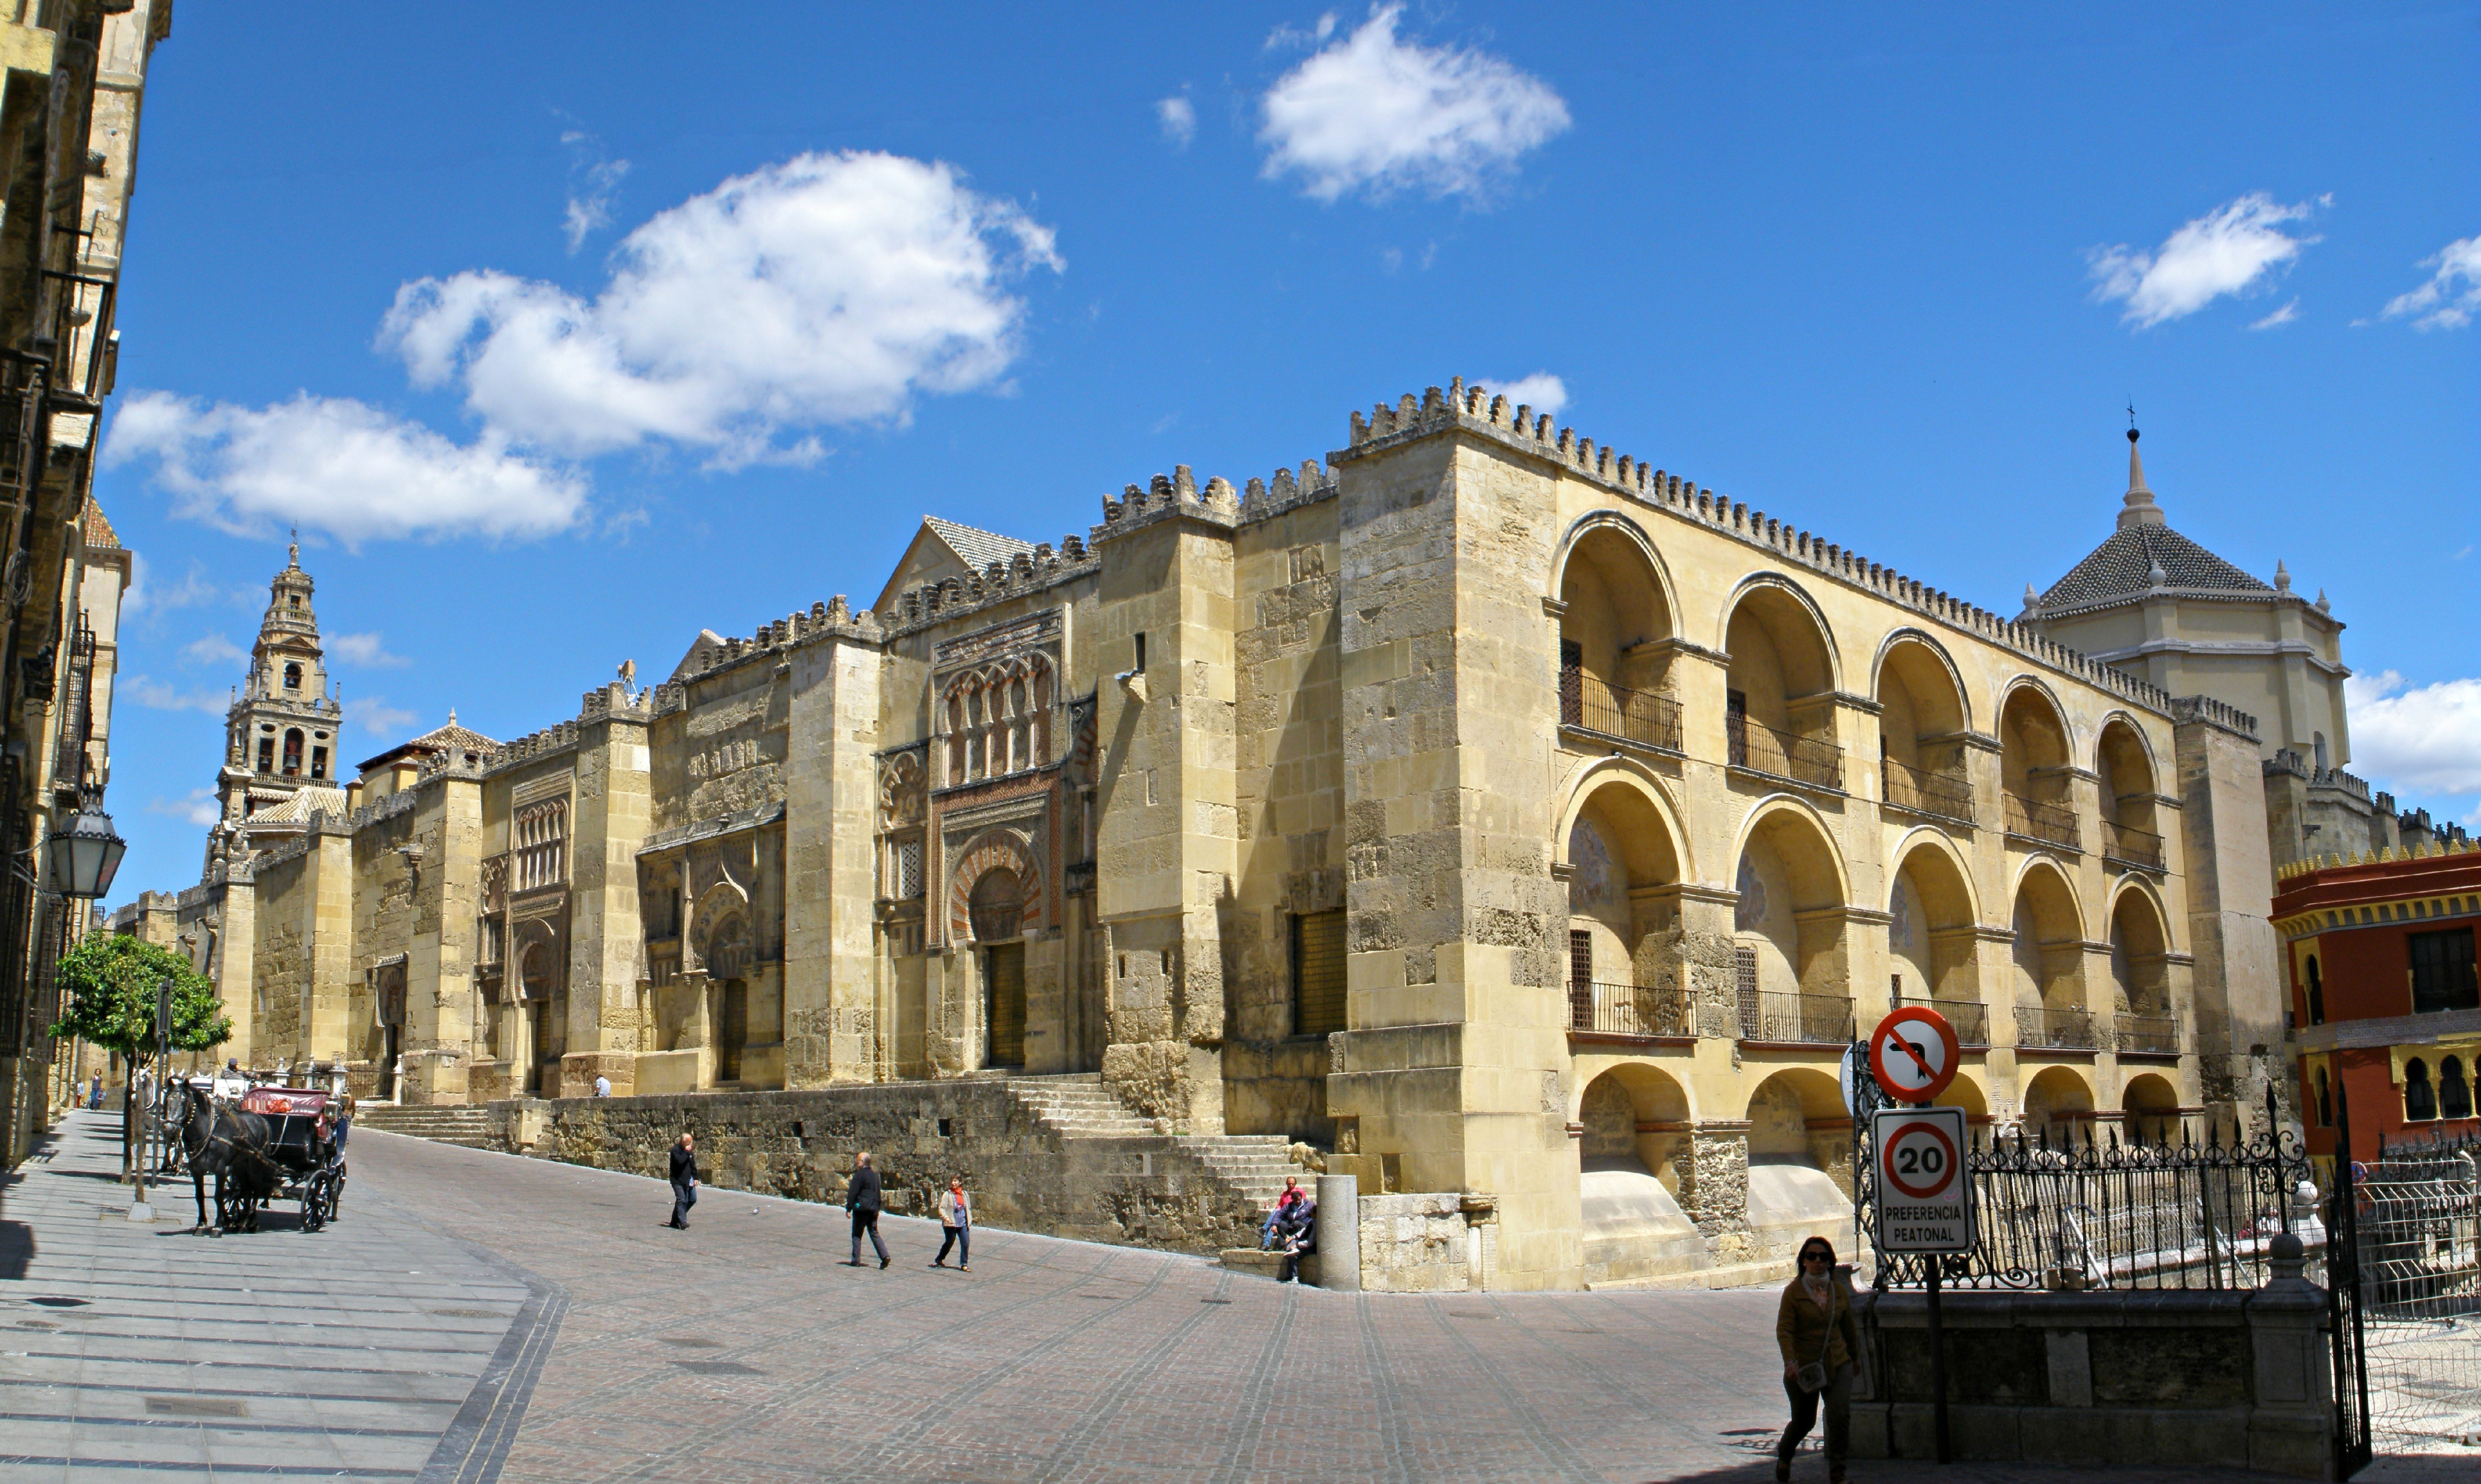 Mezquita Image: Object Space Building Place: MOSQUE OF CORDOBA